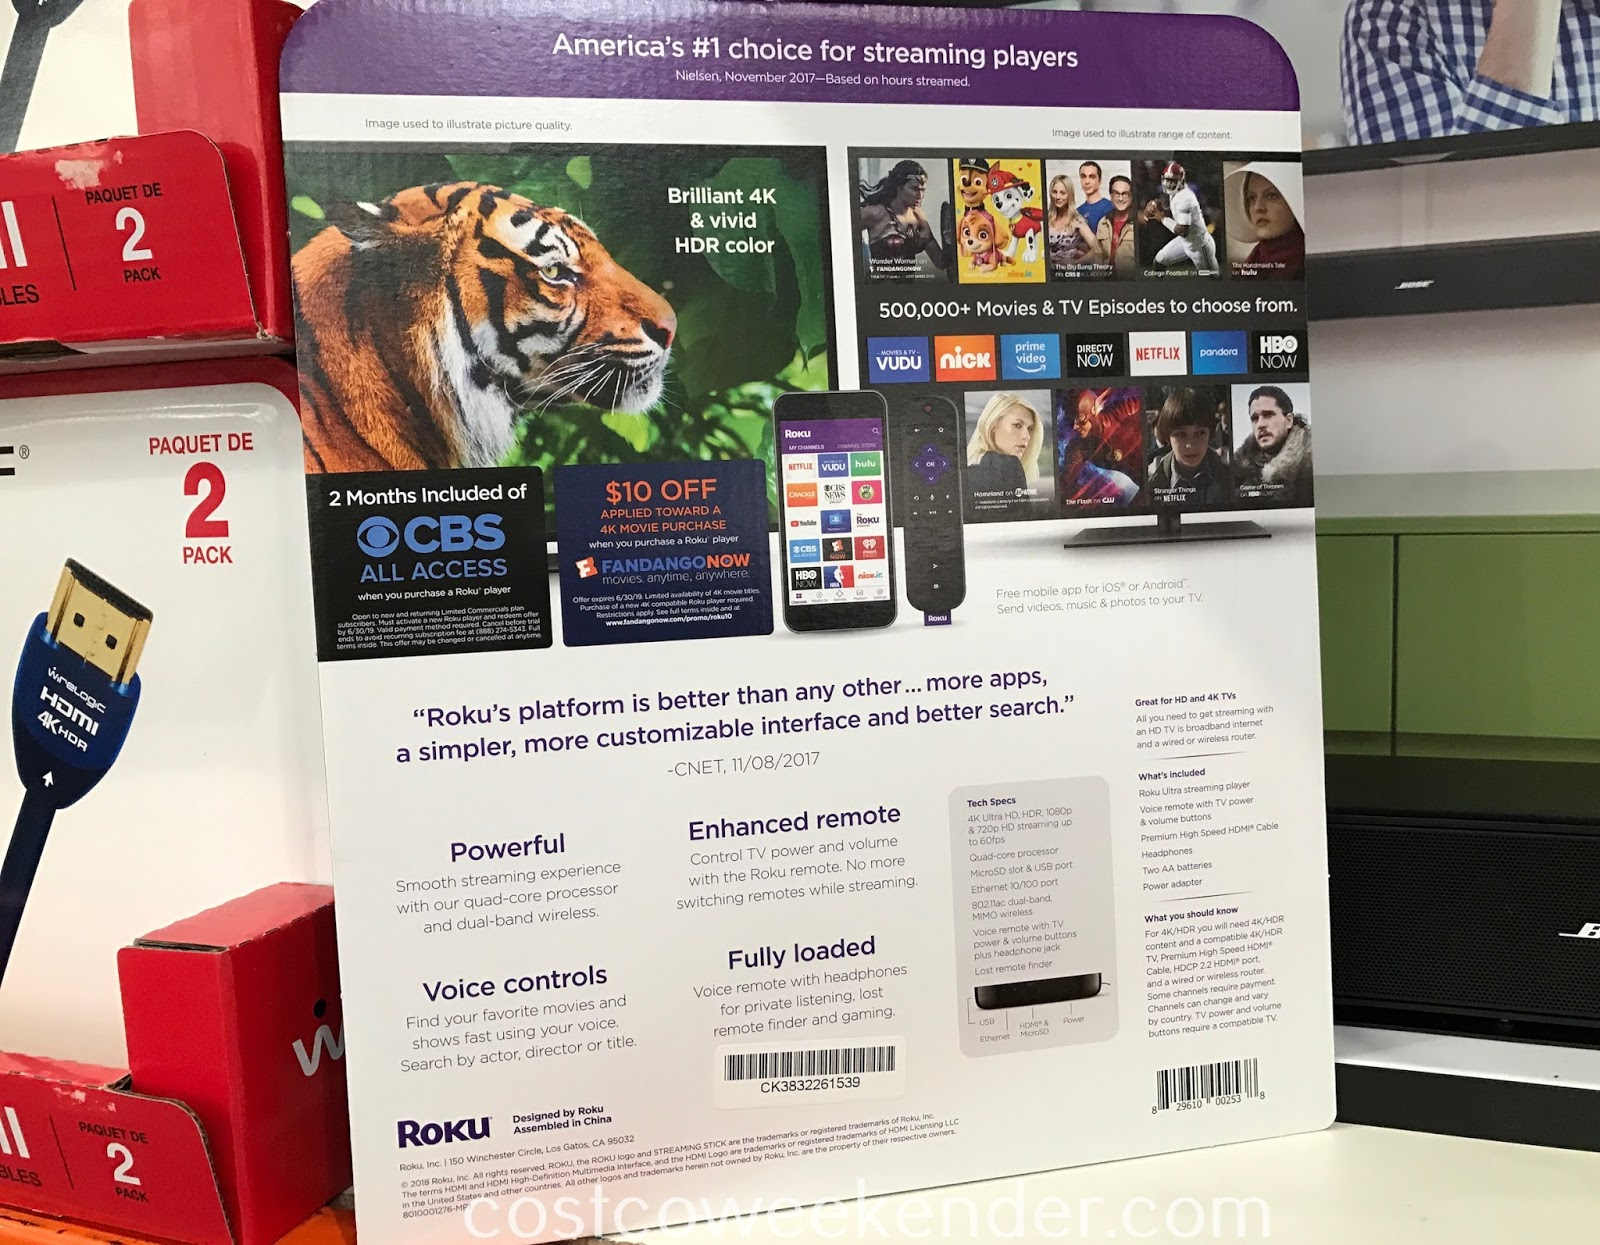 Costco 1115050 - Roku Ultra 4K Streaming Player: go ahead and cut the cord; lots of content for you to stream now